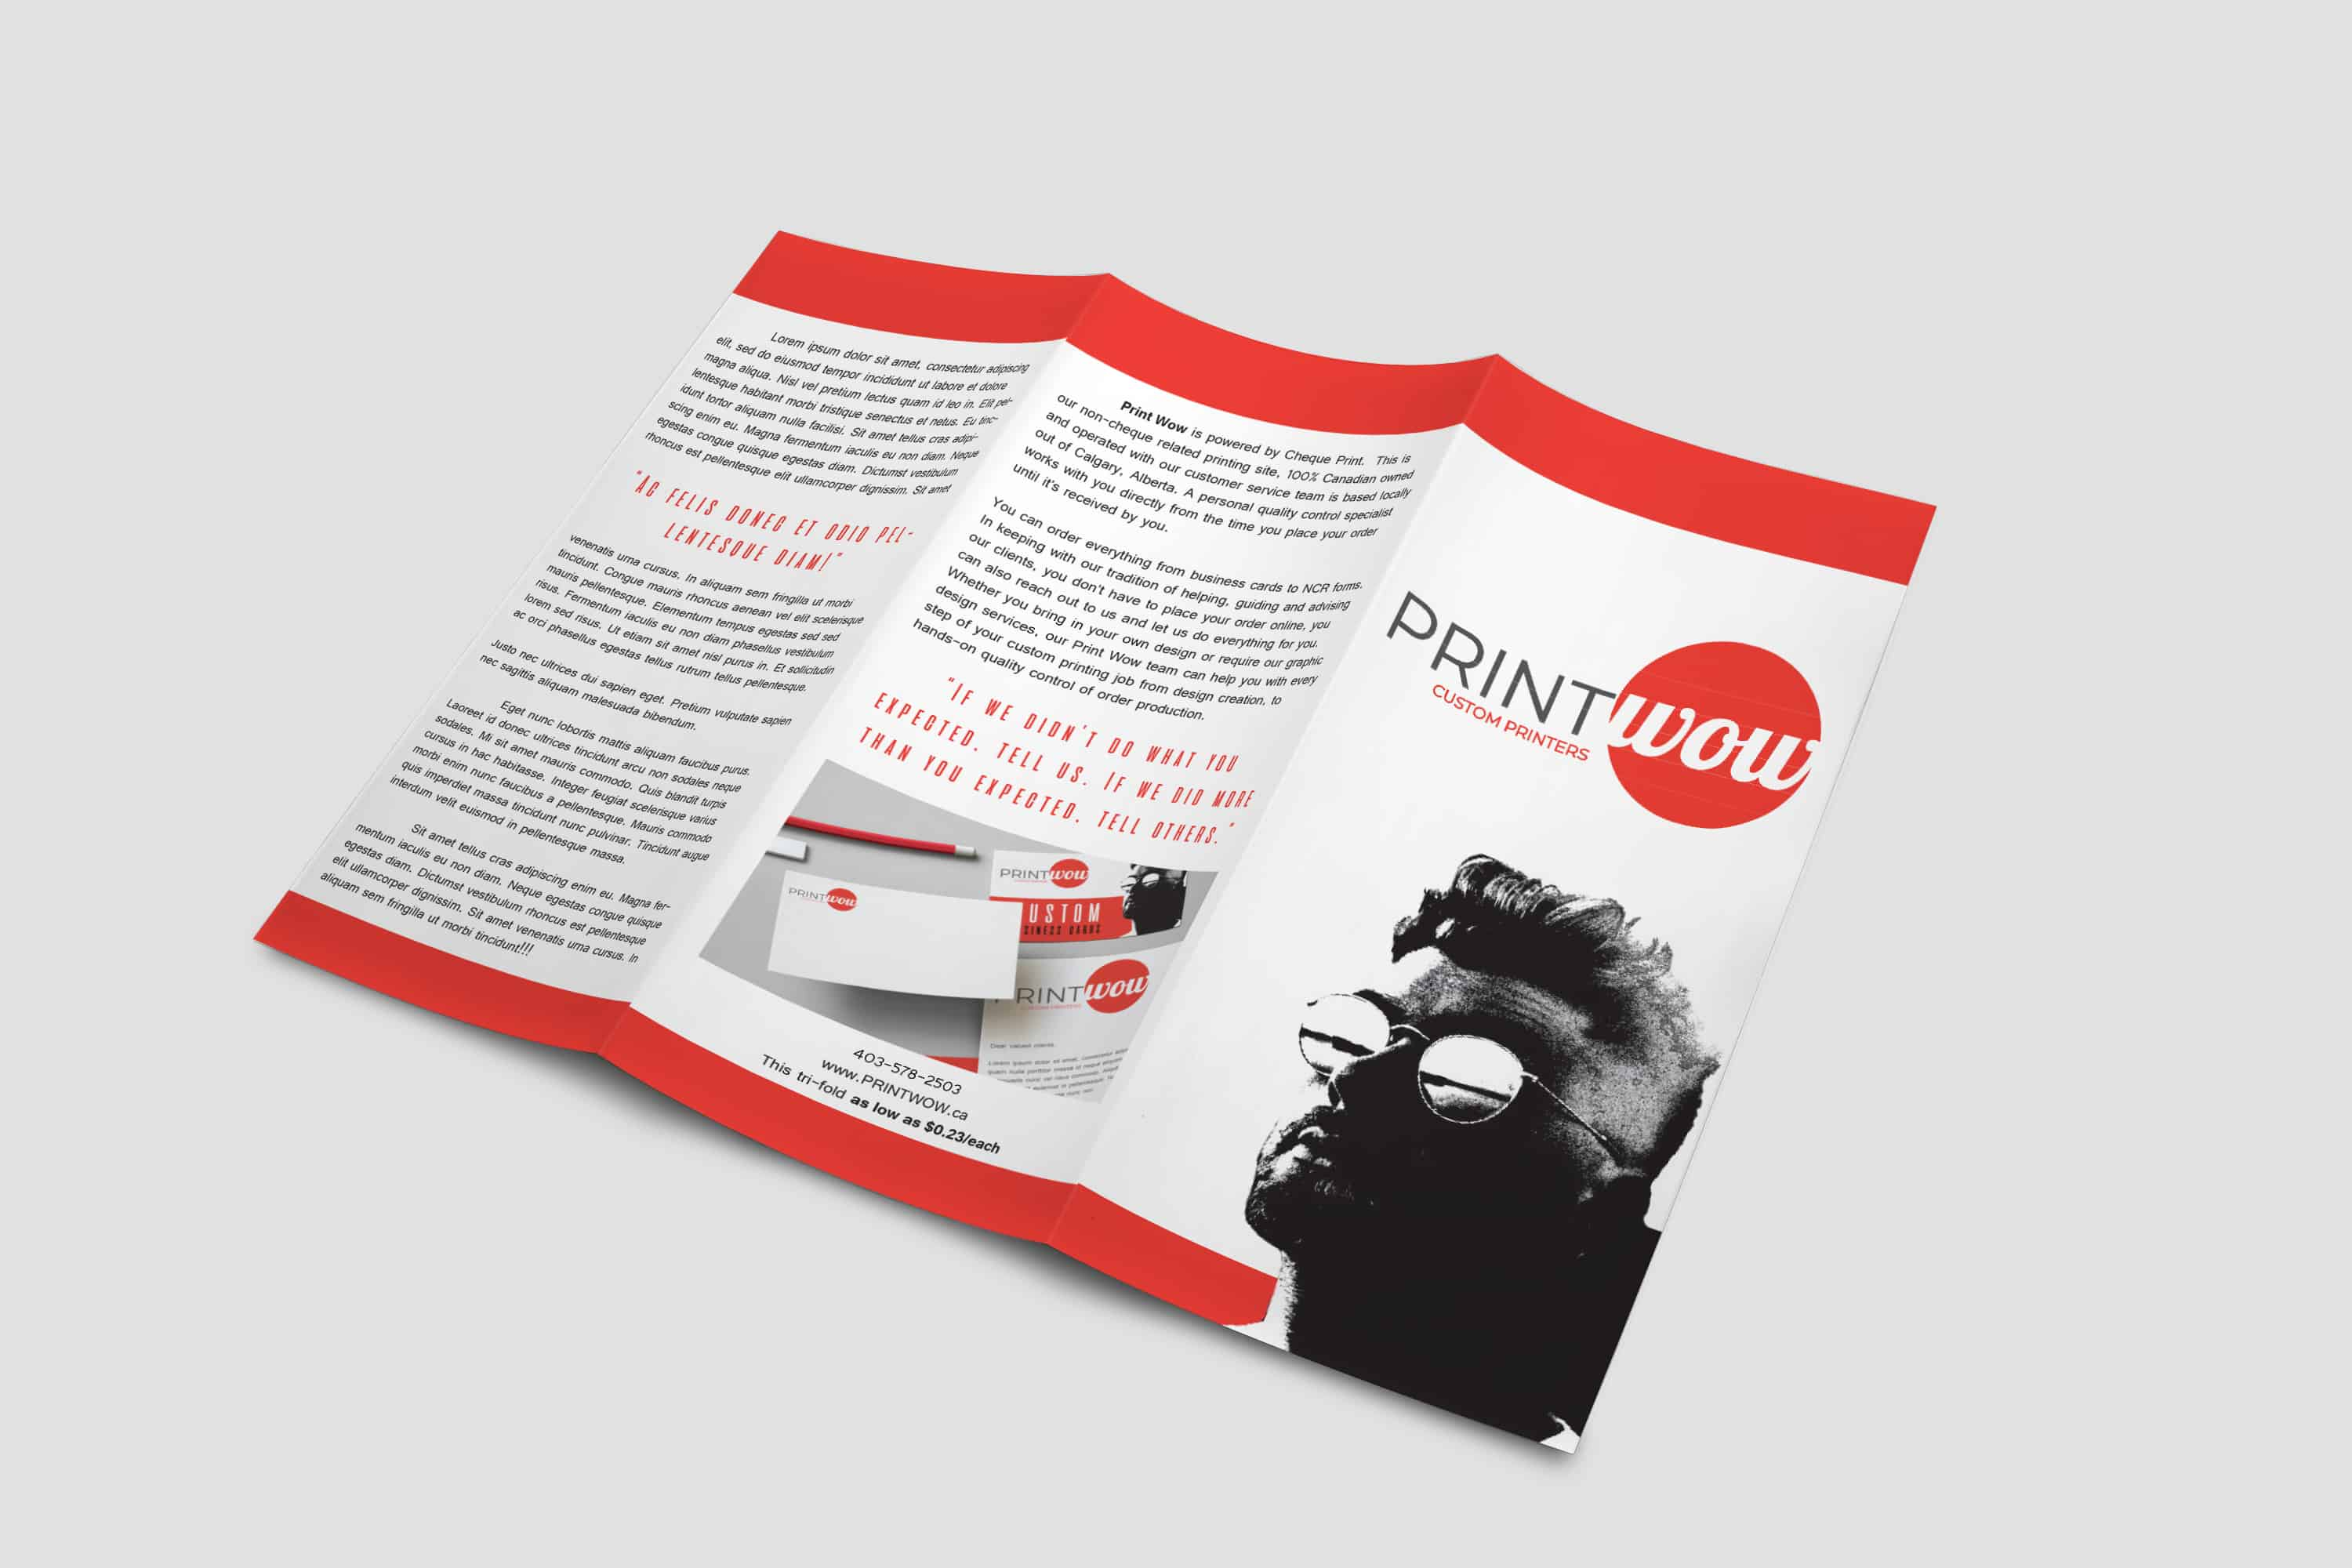 Print Wow Trifold Brochure/Flyer